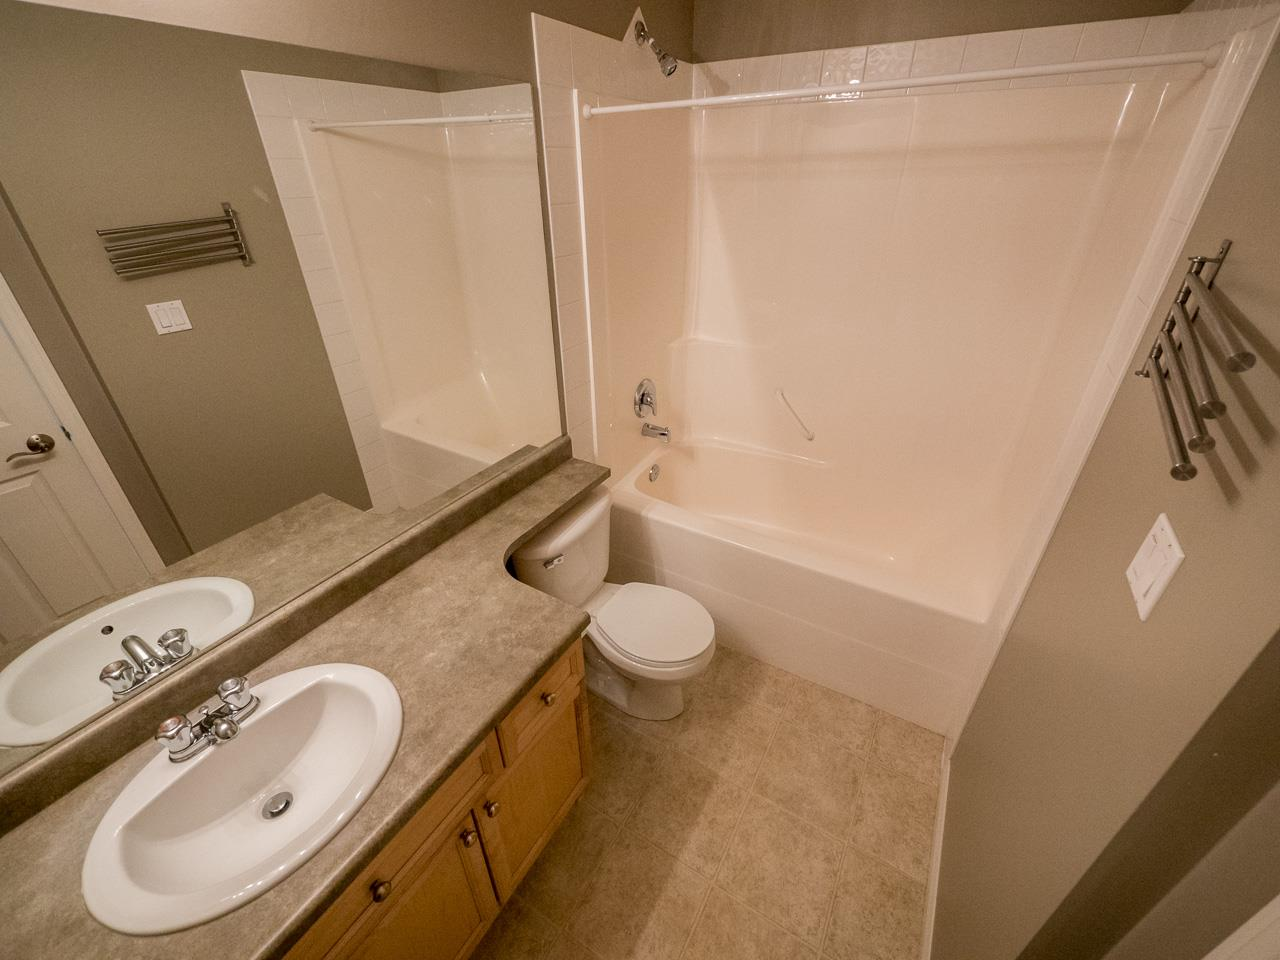 Photo 14: 71 3040 SPENCE Way in Edmonton: Zone 53 Townhouse for sale : MLS(r) # E4063695